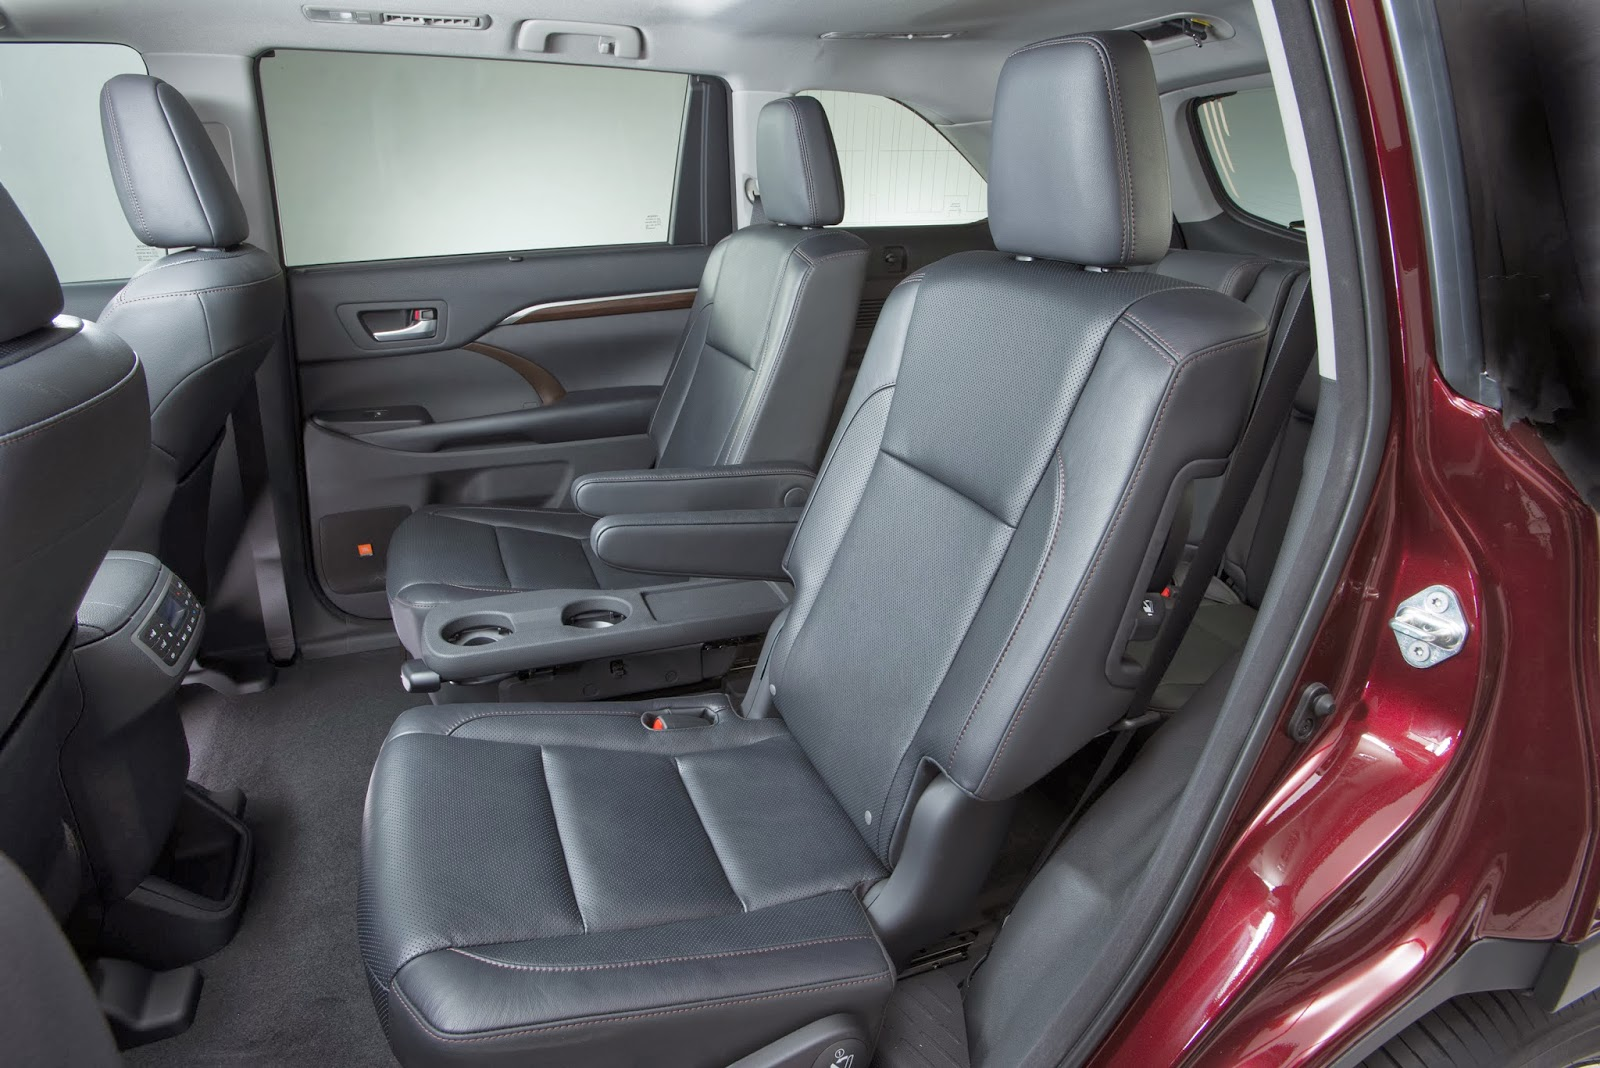 Toyota Sienna Captains Chairs Removal Sleeper Chair Target 2015 Suvs With 2nd Row Html Autos Post